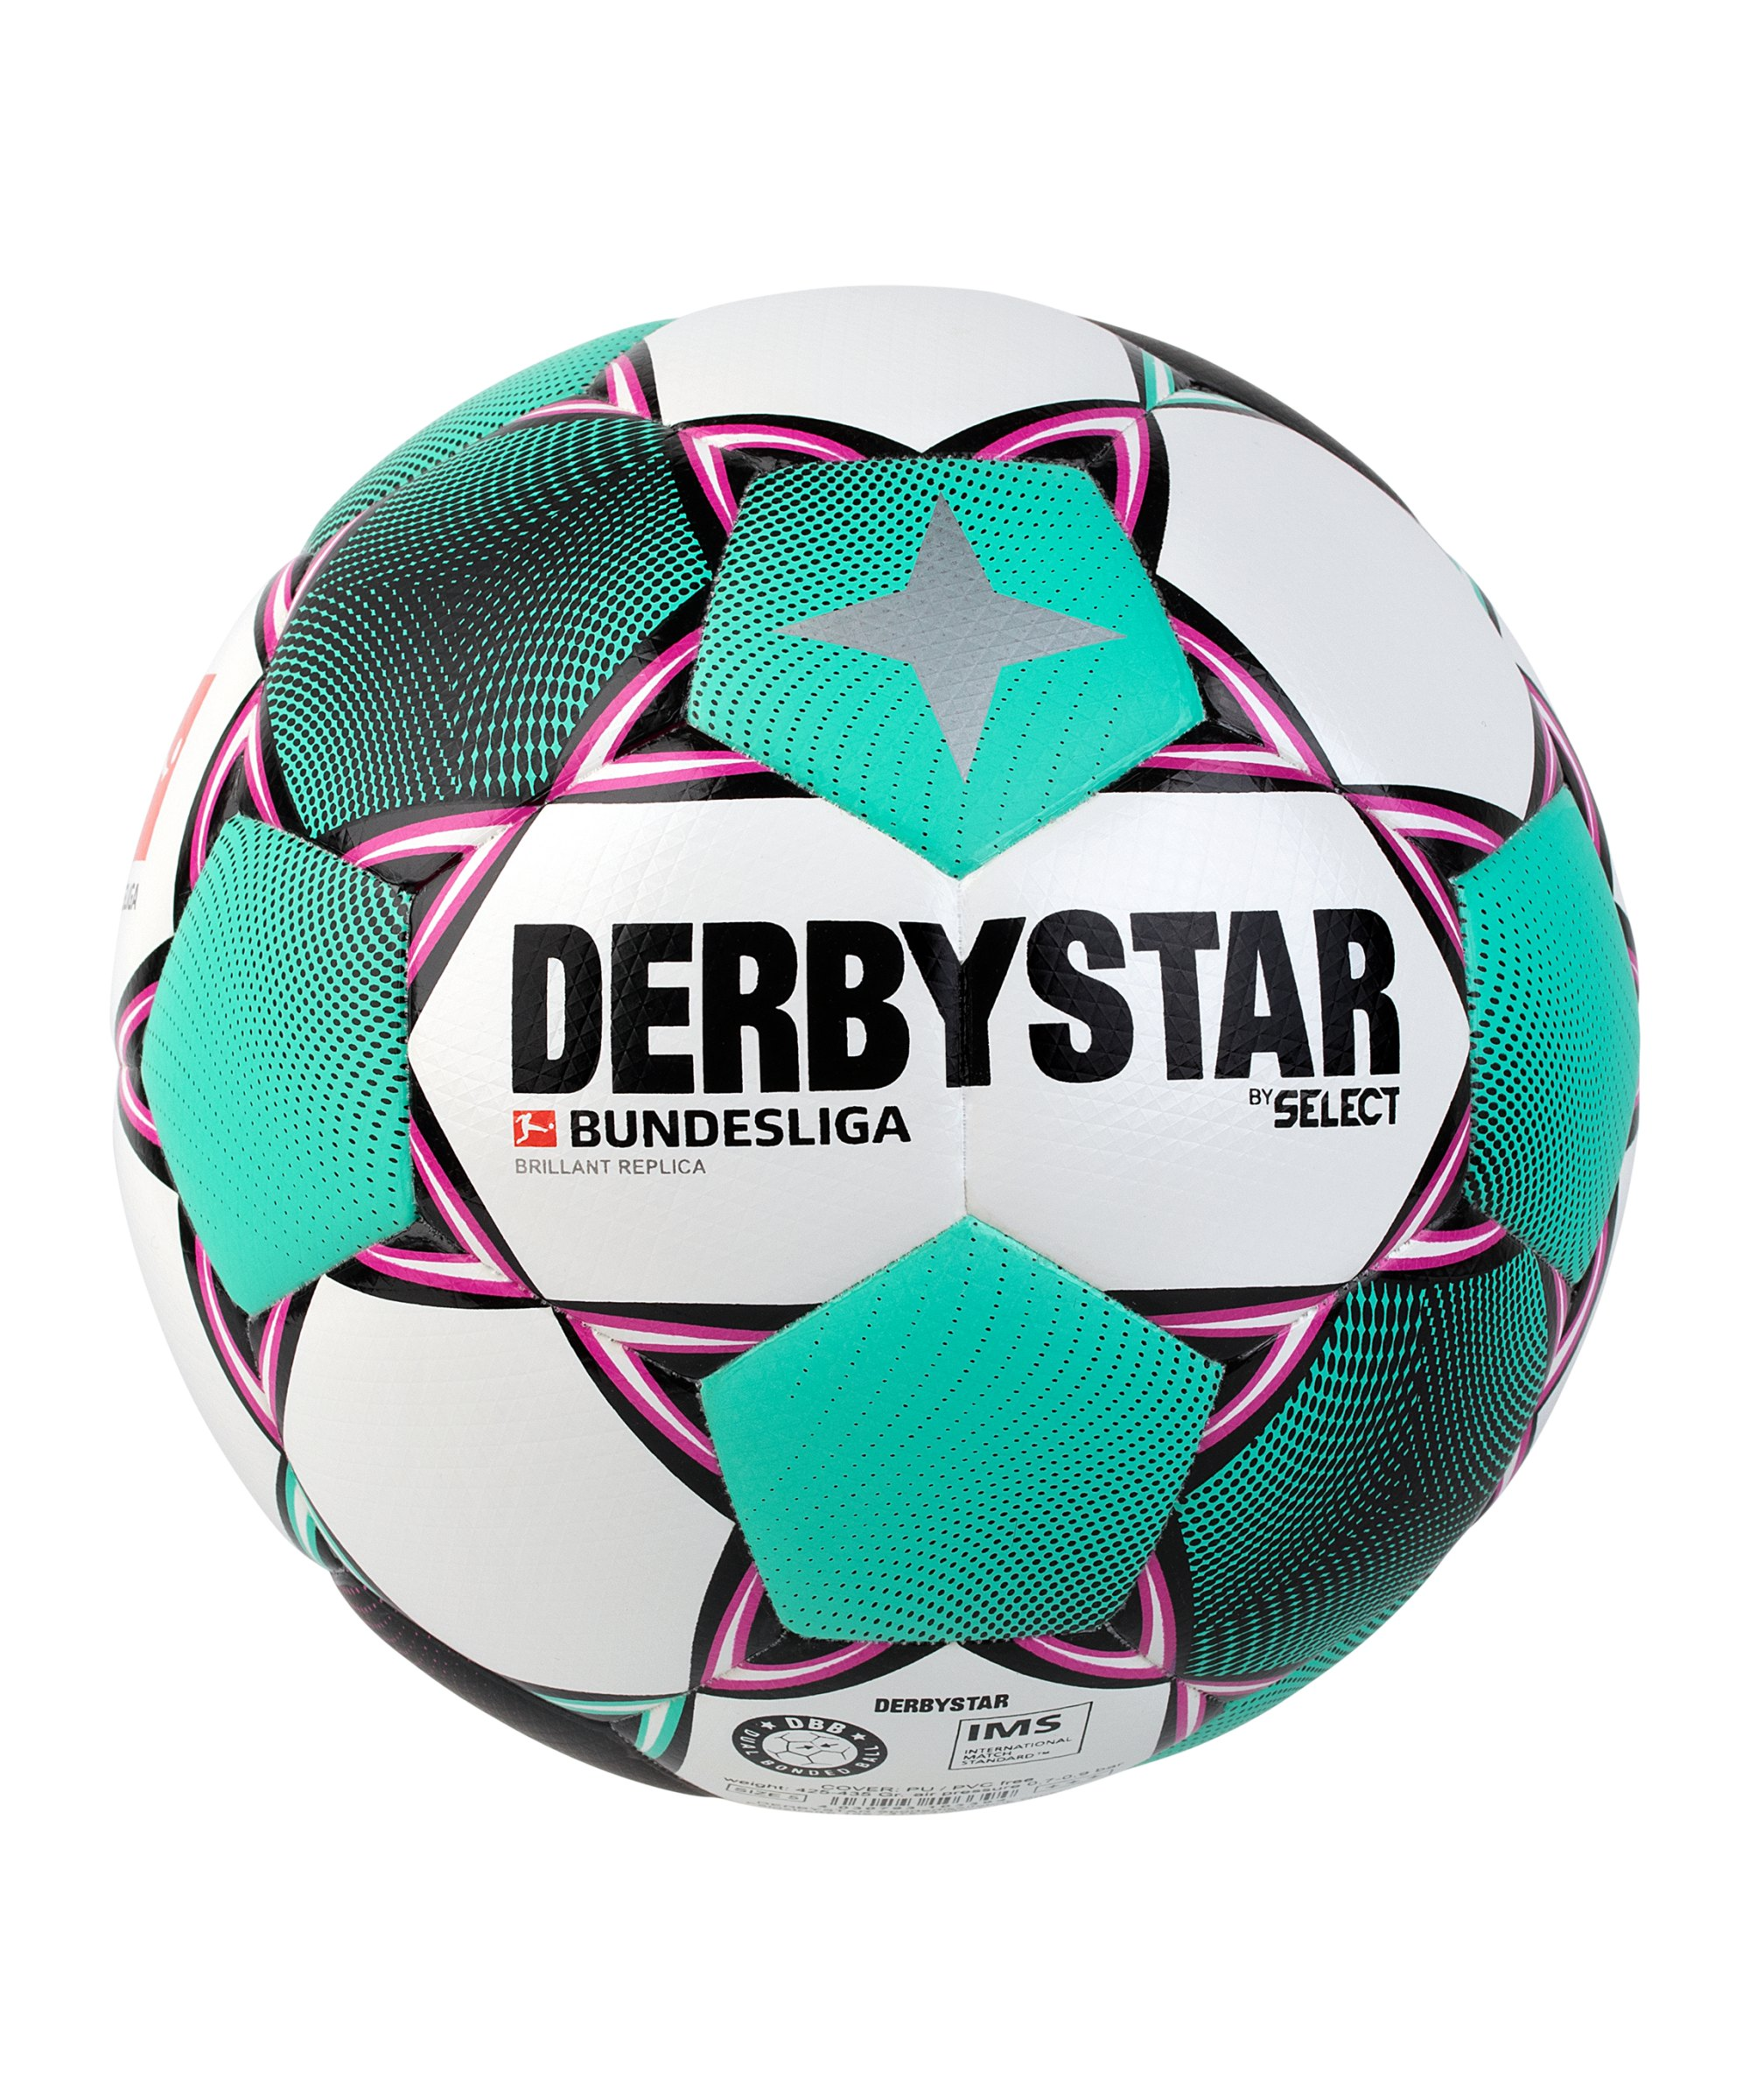 Derbystar BL Brillant Replica Trainingsball Weiss F020 - weiss